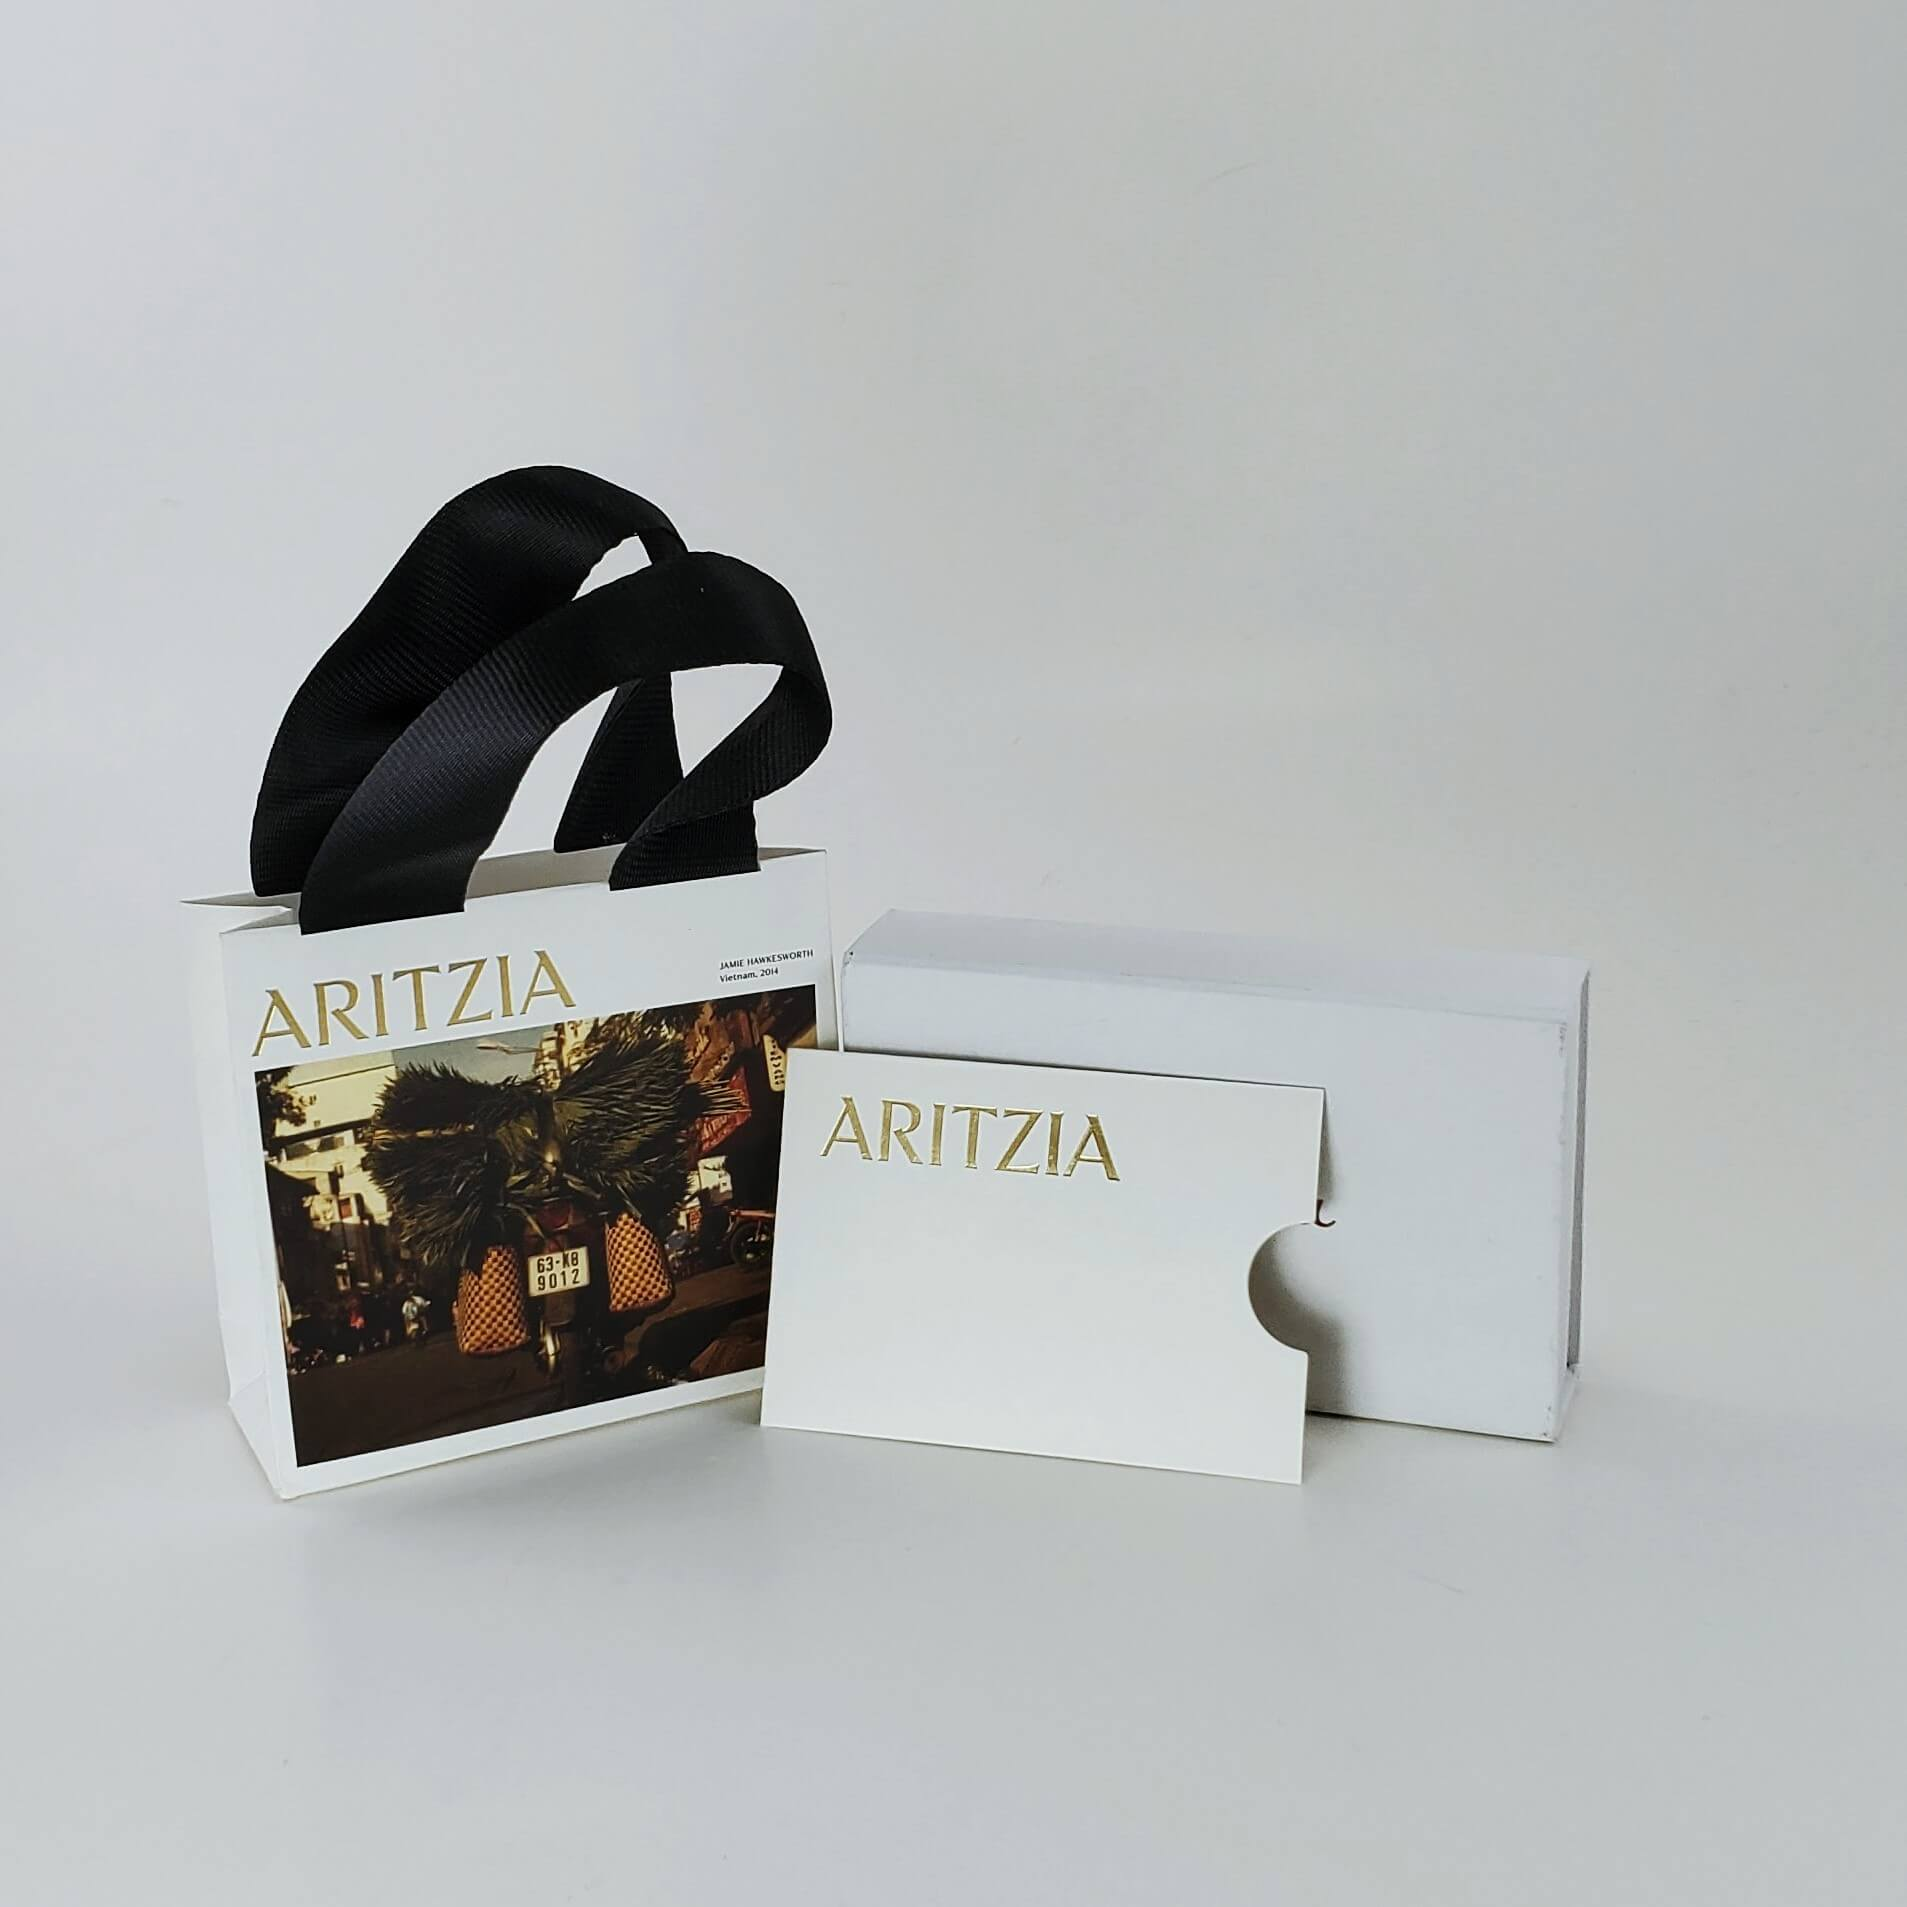 Aritzia Gift Card Bag and Sleeve with gold foil hot stamp logo